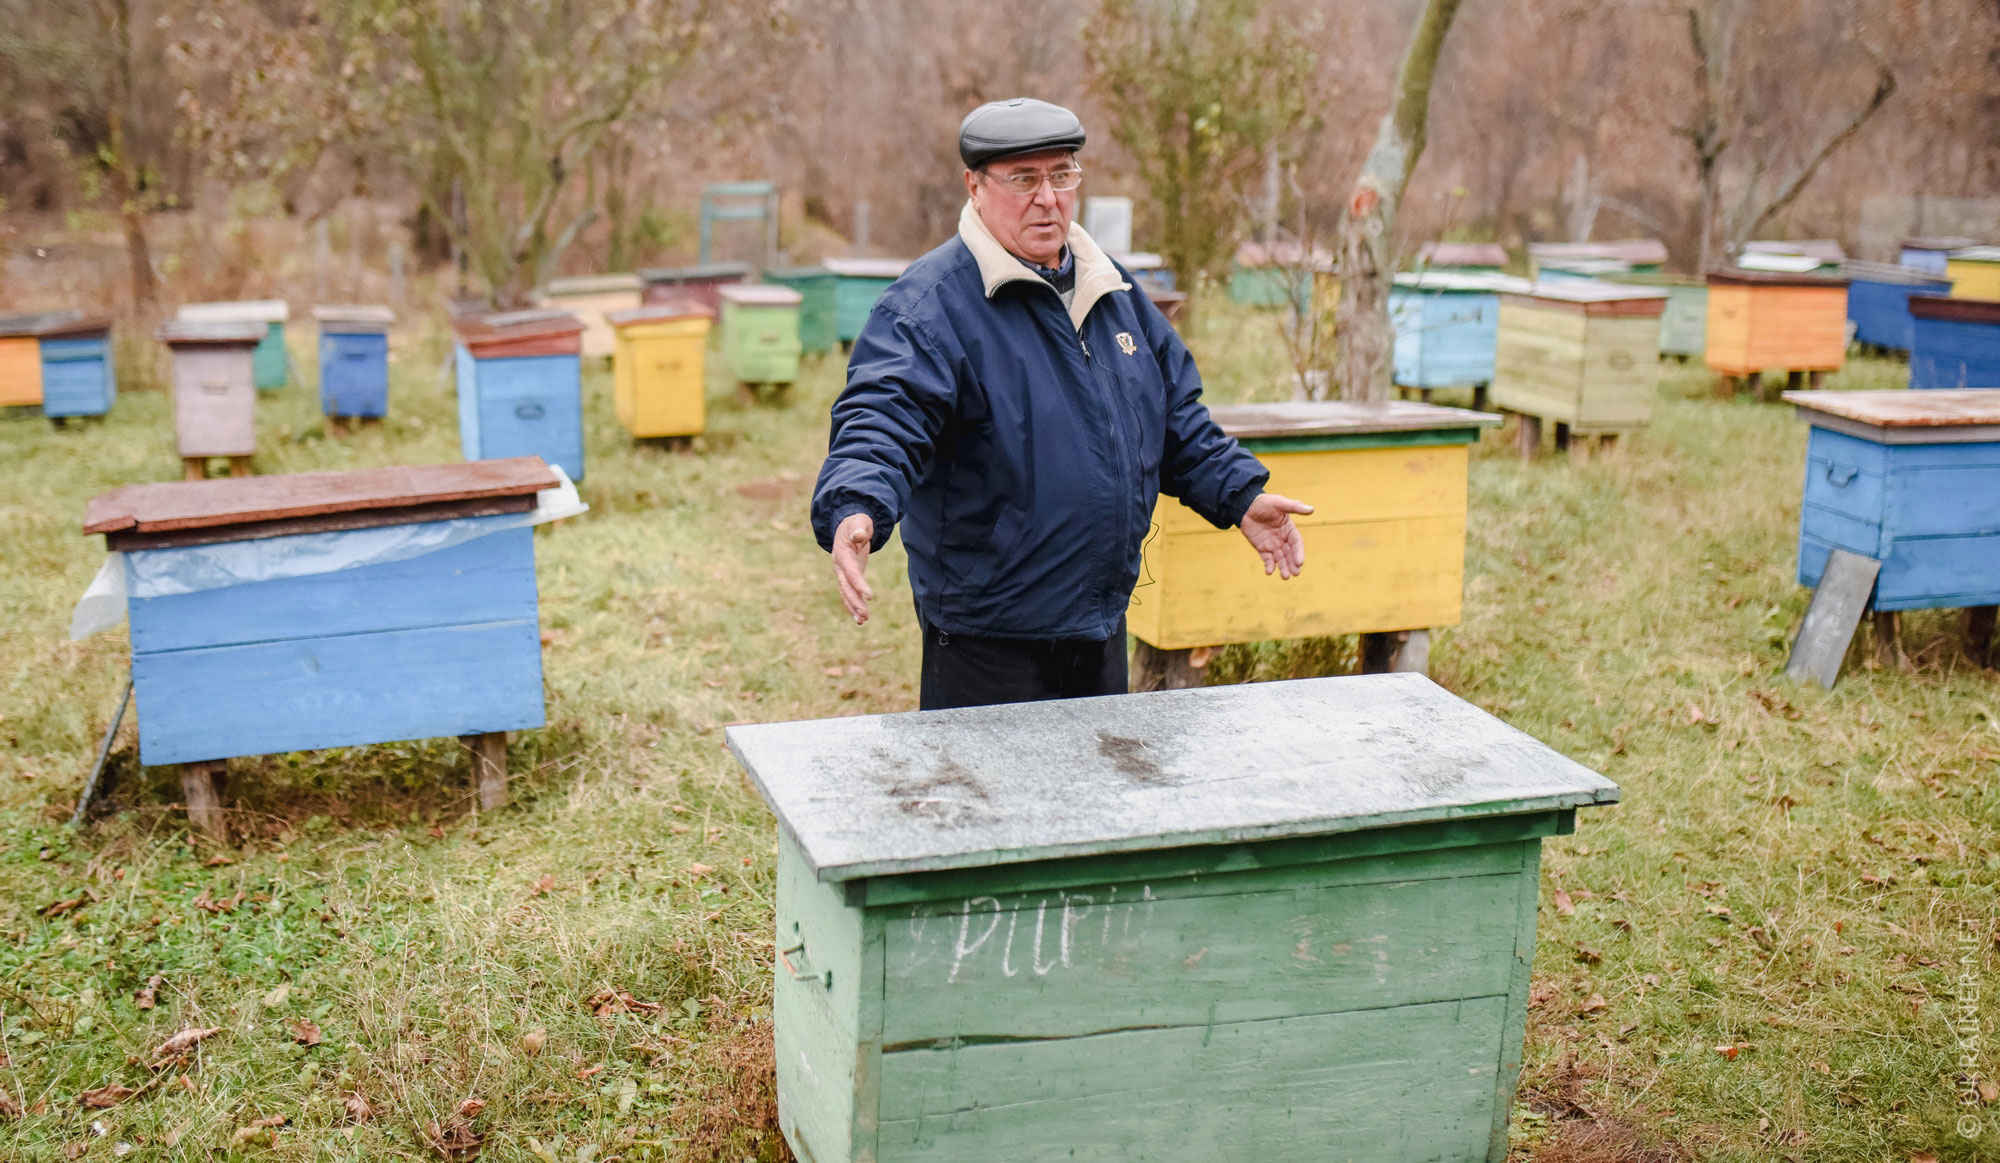 Hives instead of houses